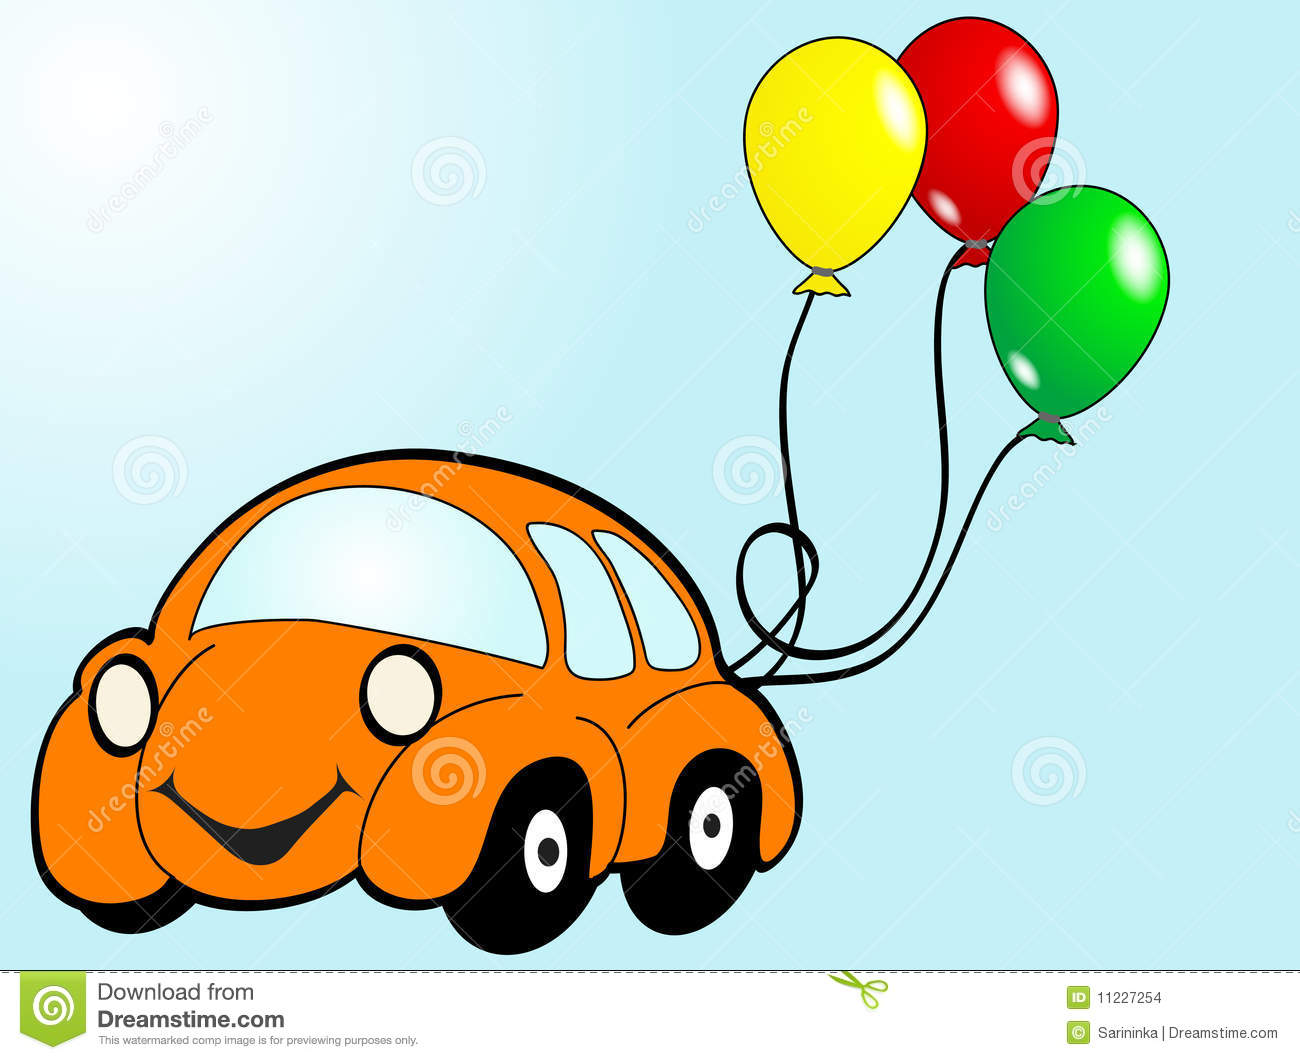 Orange car with balloons - vector illustration.